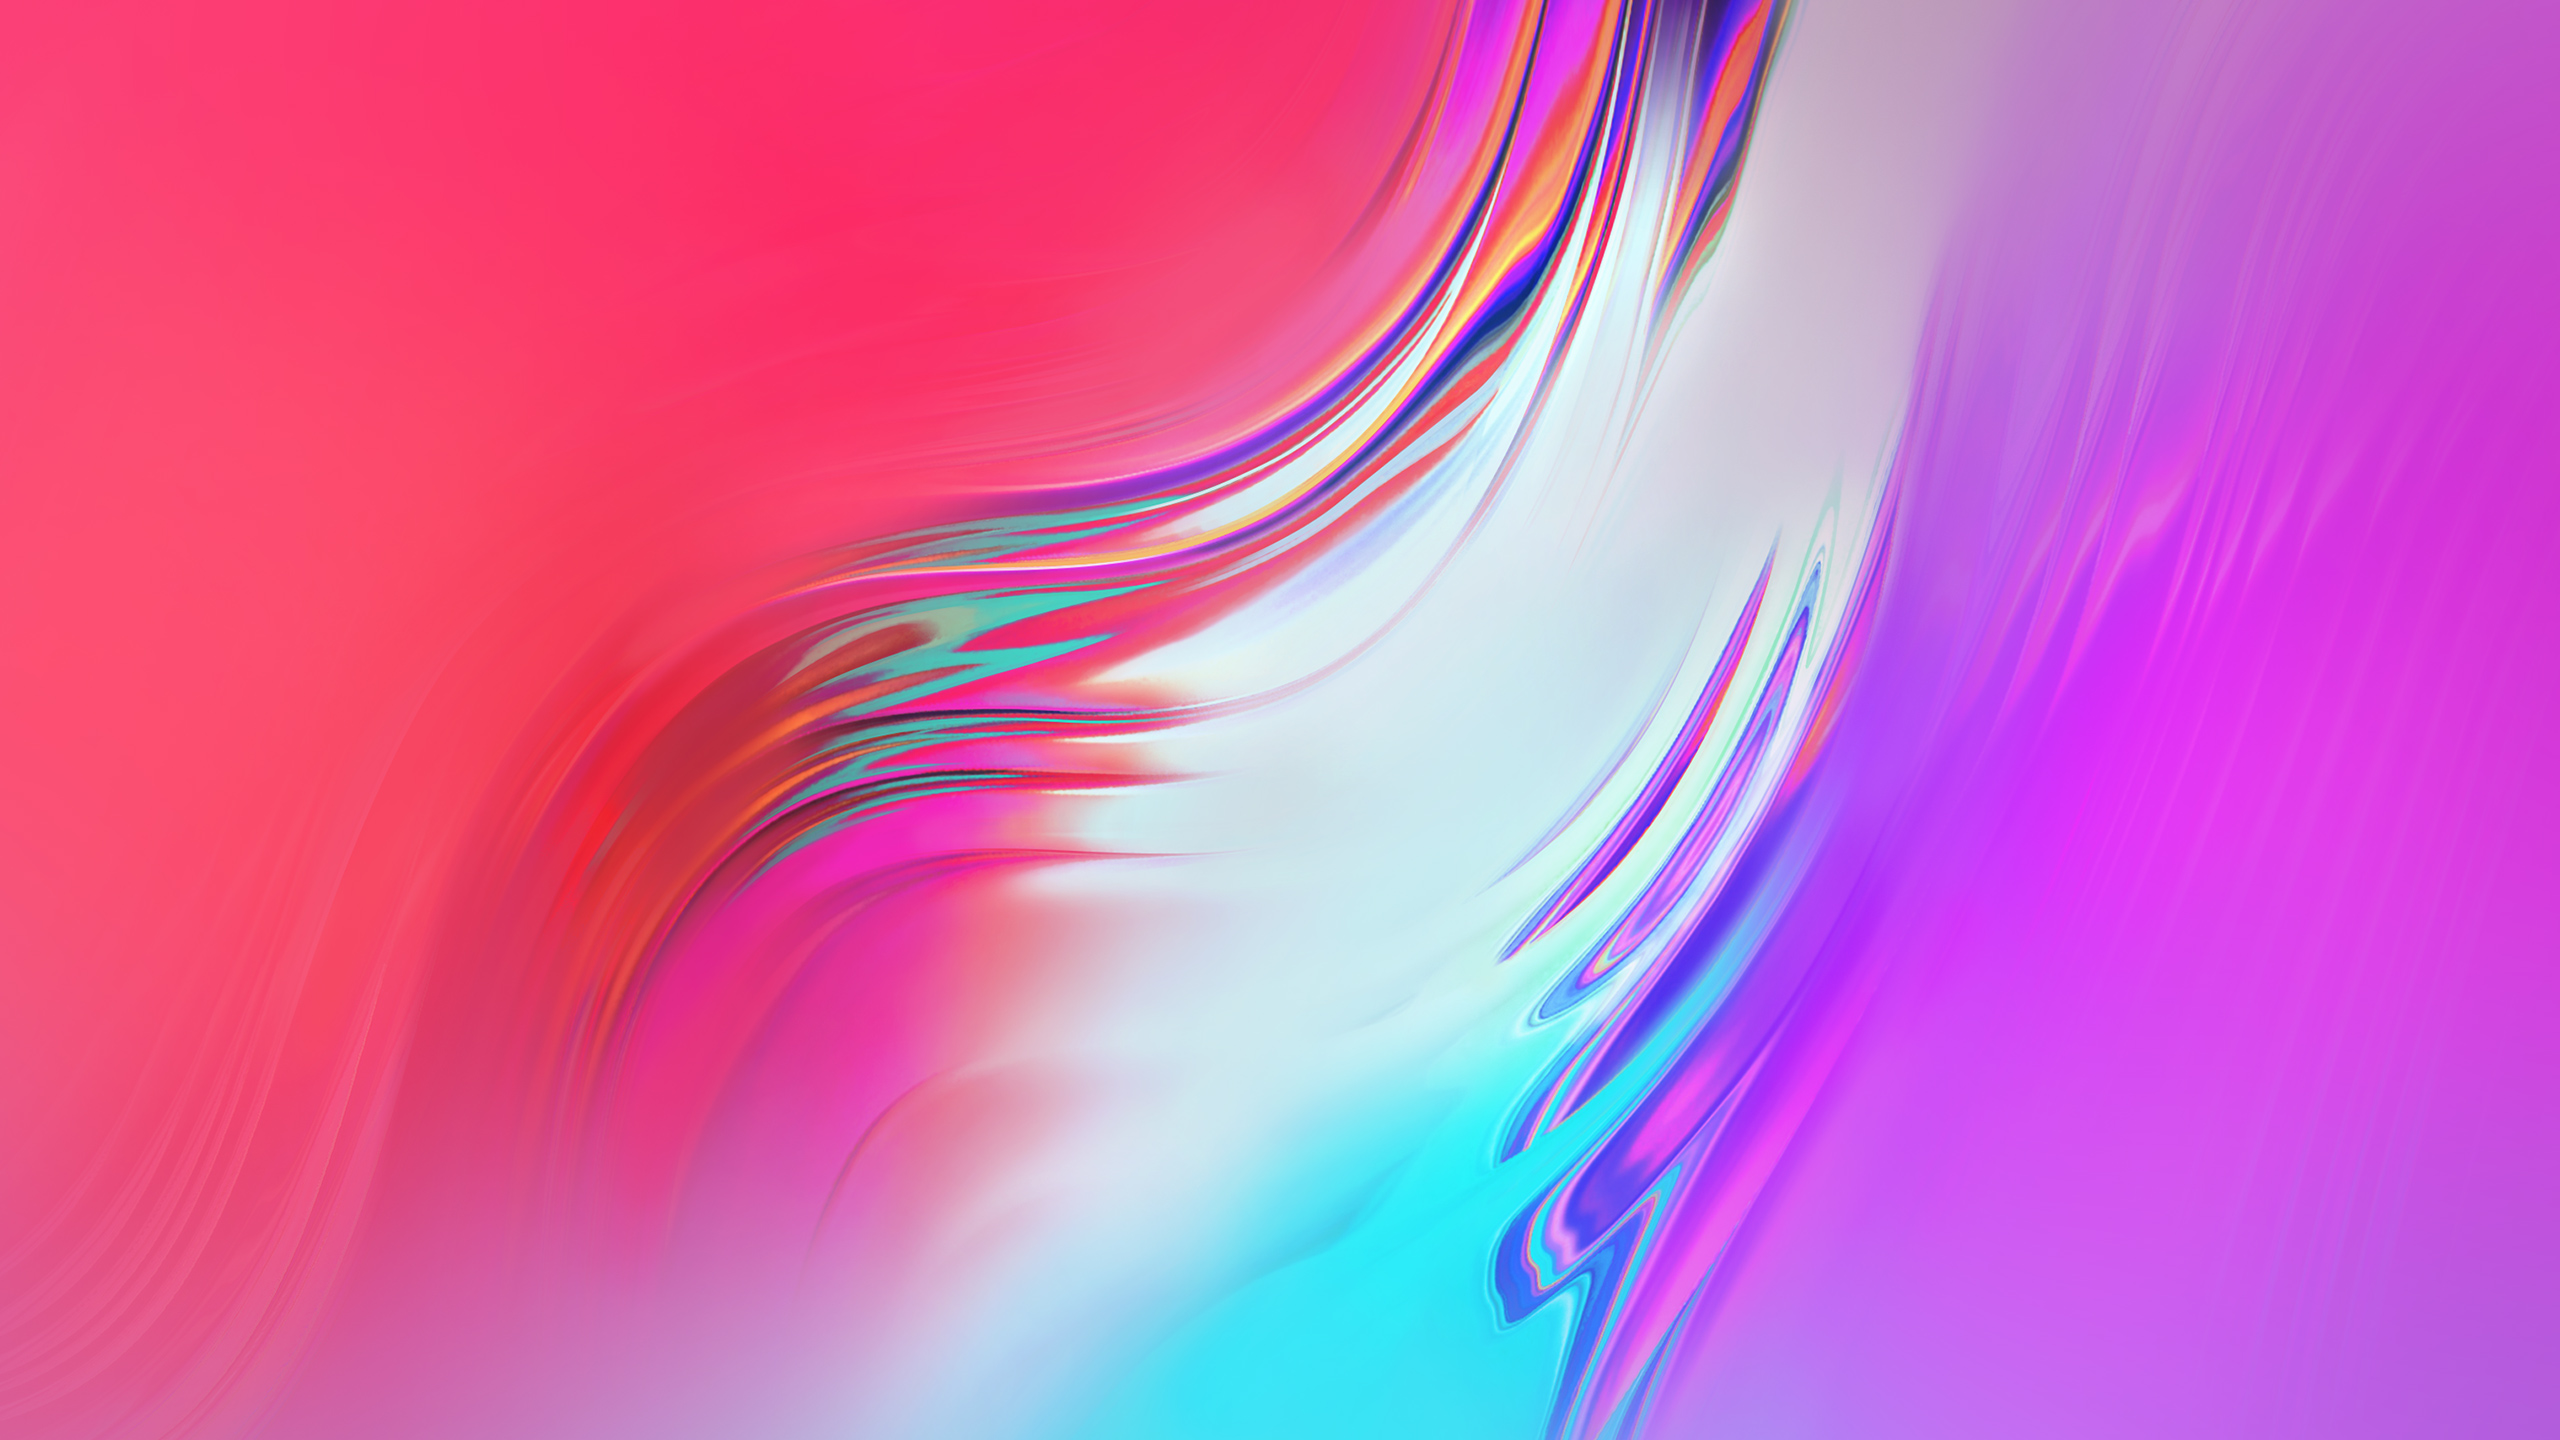 Samsung Galaxy S10 Abstract Hd Abstract 4k Wallpapers Images